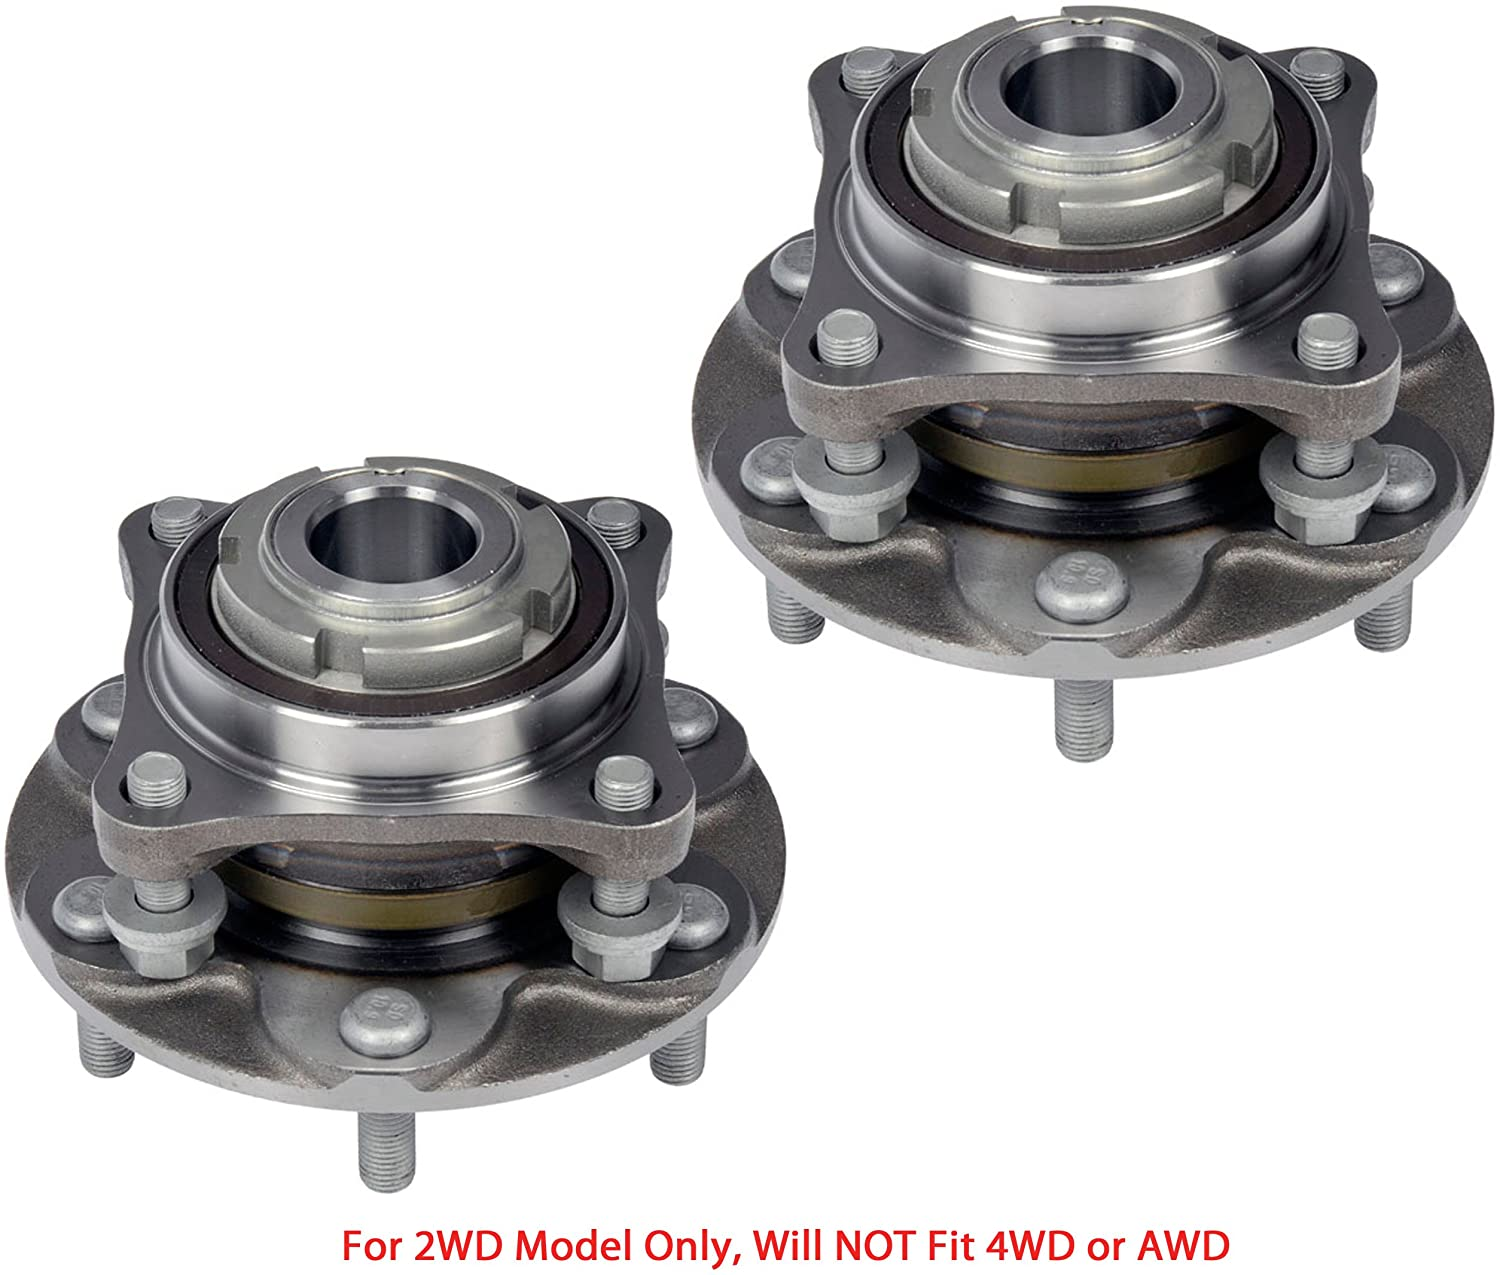 2 DTA Front Wheel Hub Bearing Full Assemblies NT5150402WG3 x2 Fits Front Left and Right Toyota 4Runner Tacoma FJ Cruiser Hilux 2WD Only, Will NOT Fit 4WD. Replaces Dorman # 950-004